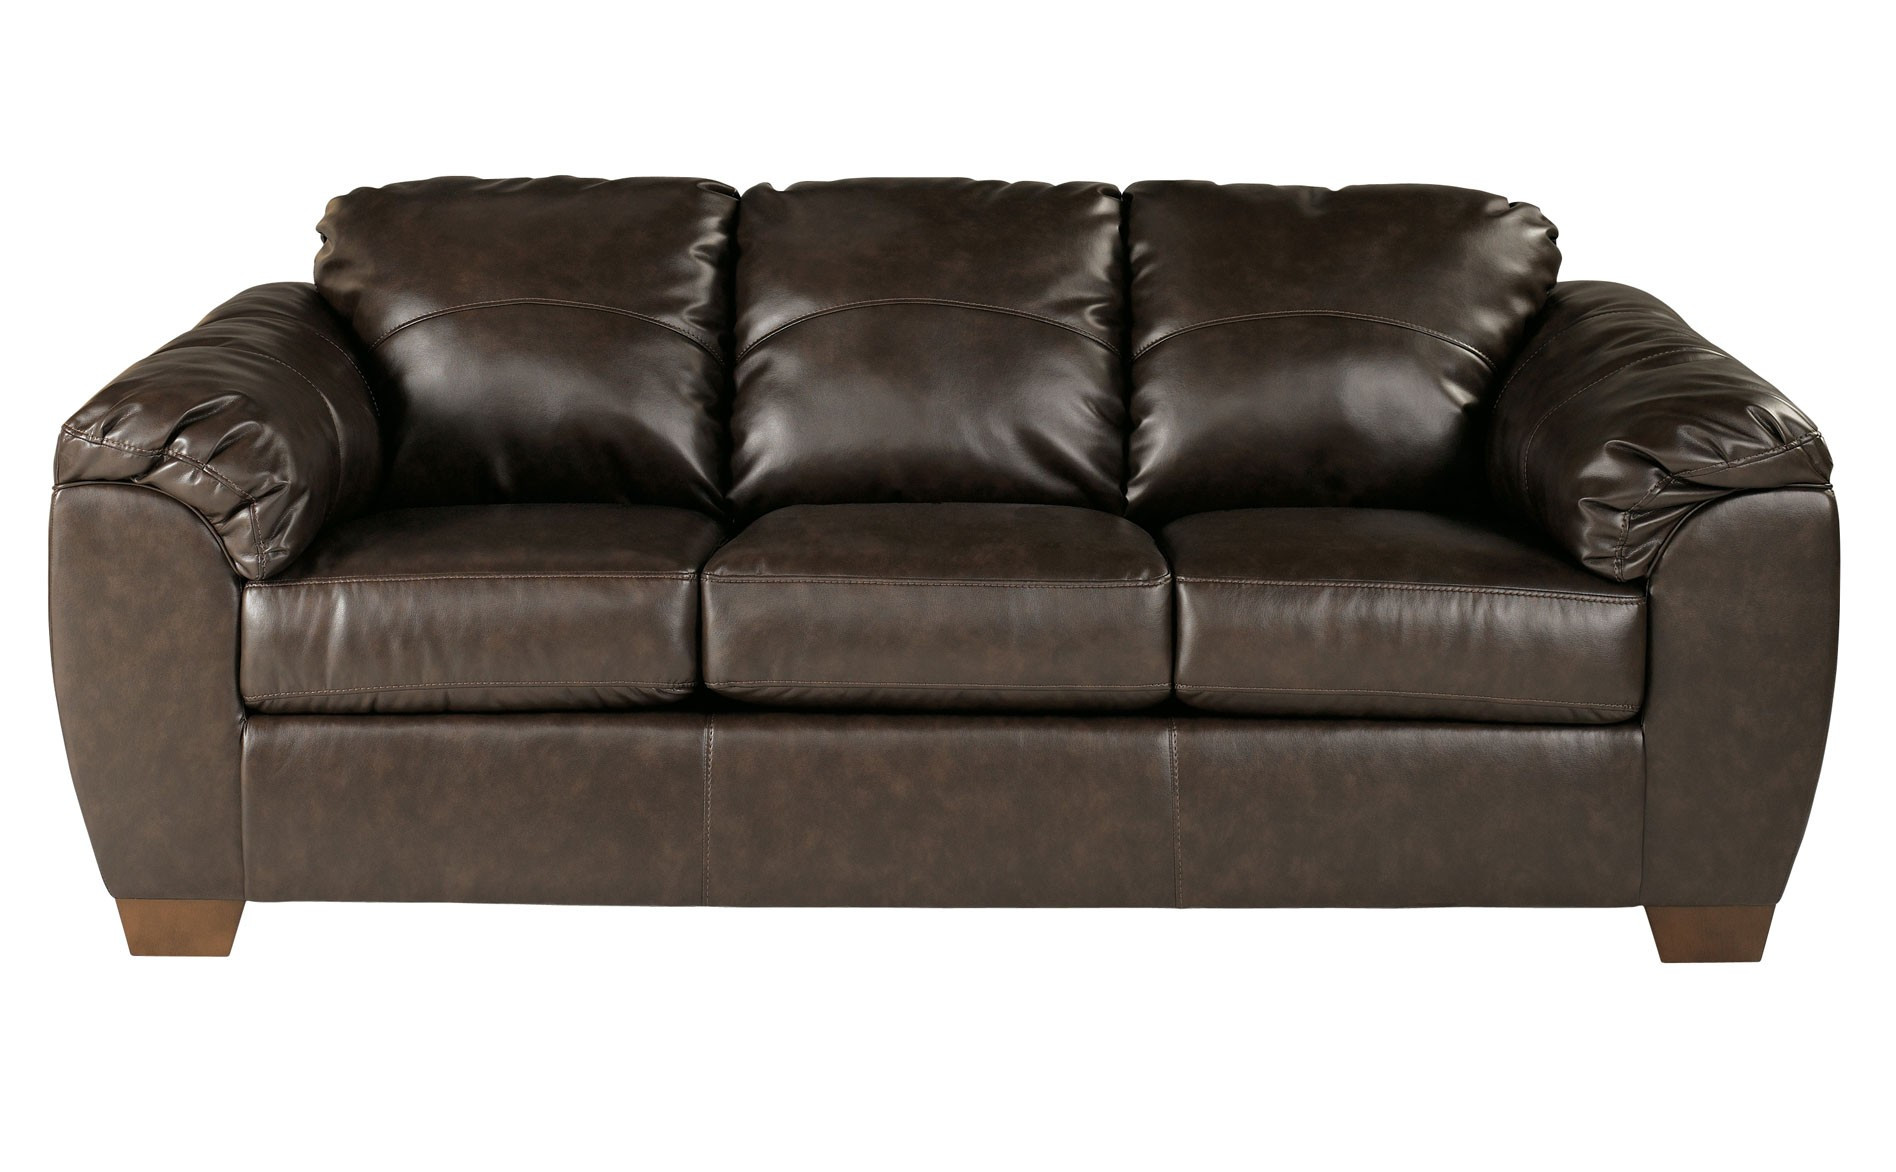 Best ideas about Leather Sofa Sleeper . Save or Pin Leather Sleeper Sofa Set Modern Leather Sleeper Sofa Now.